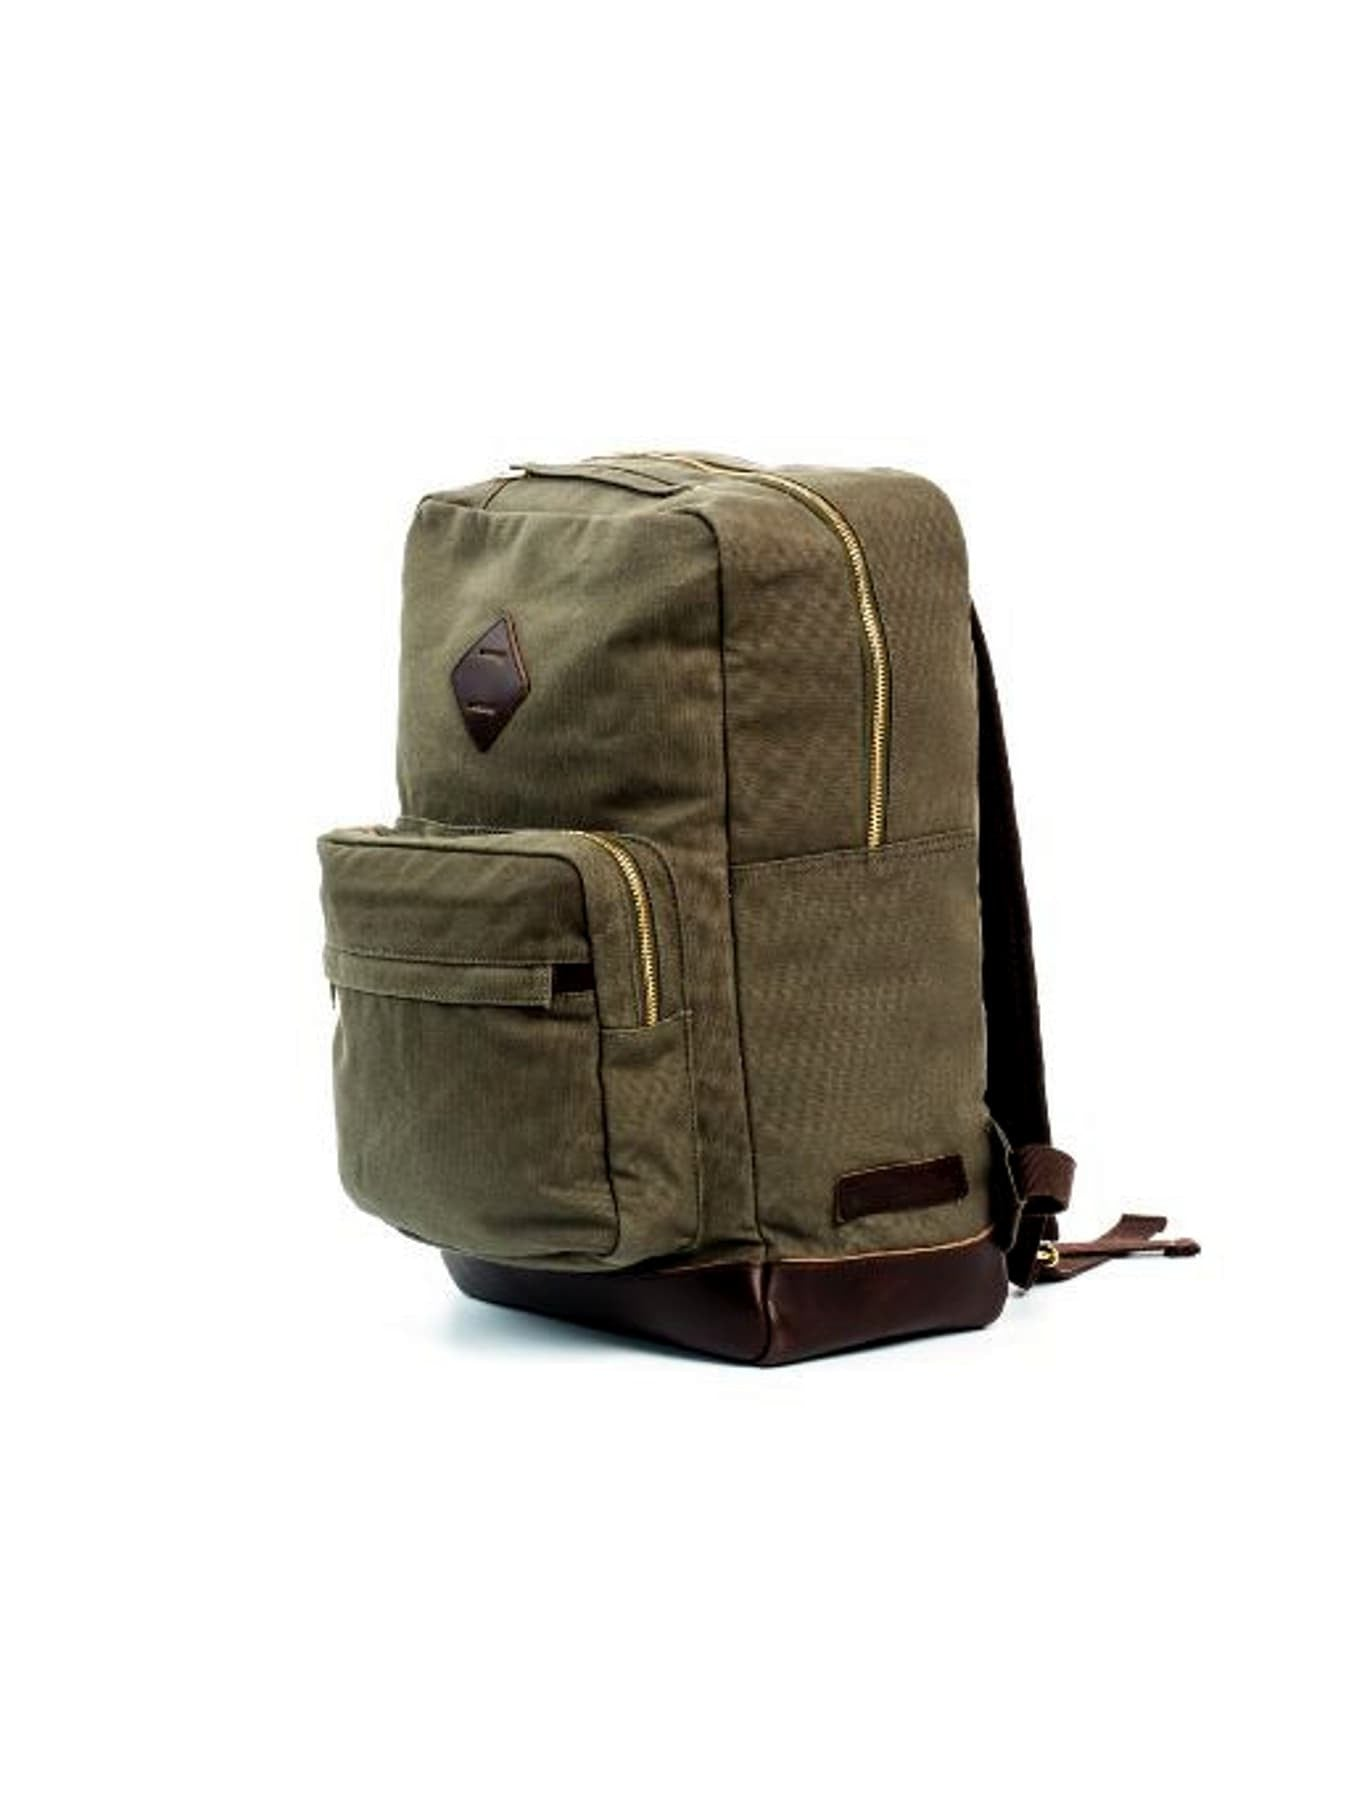 Cotton Canvas and Leather Hudderton Backapck